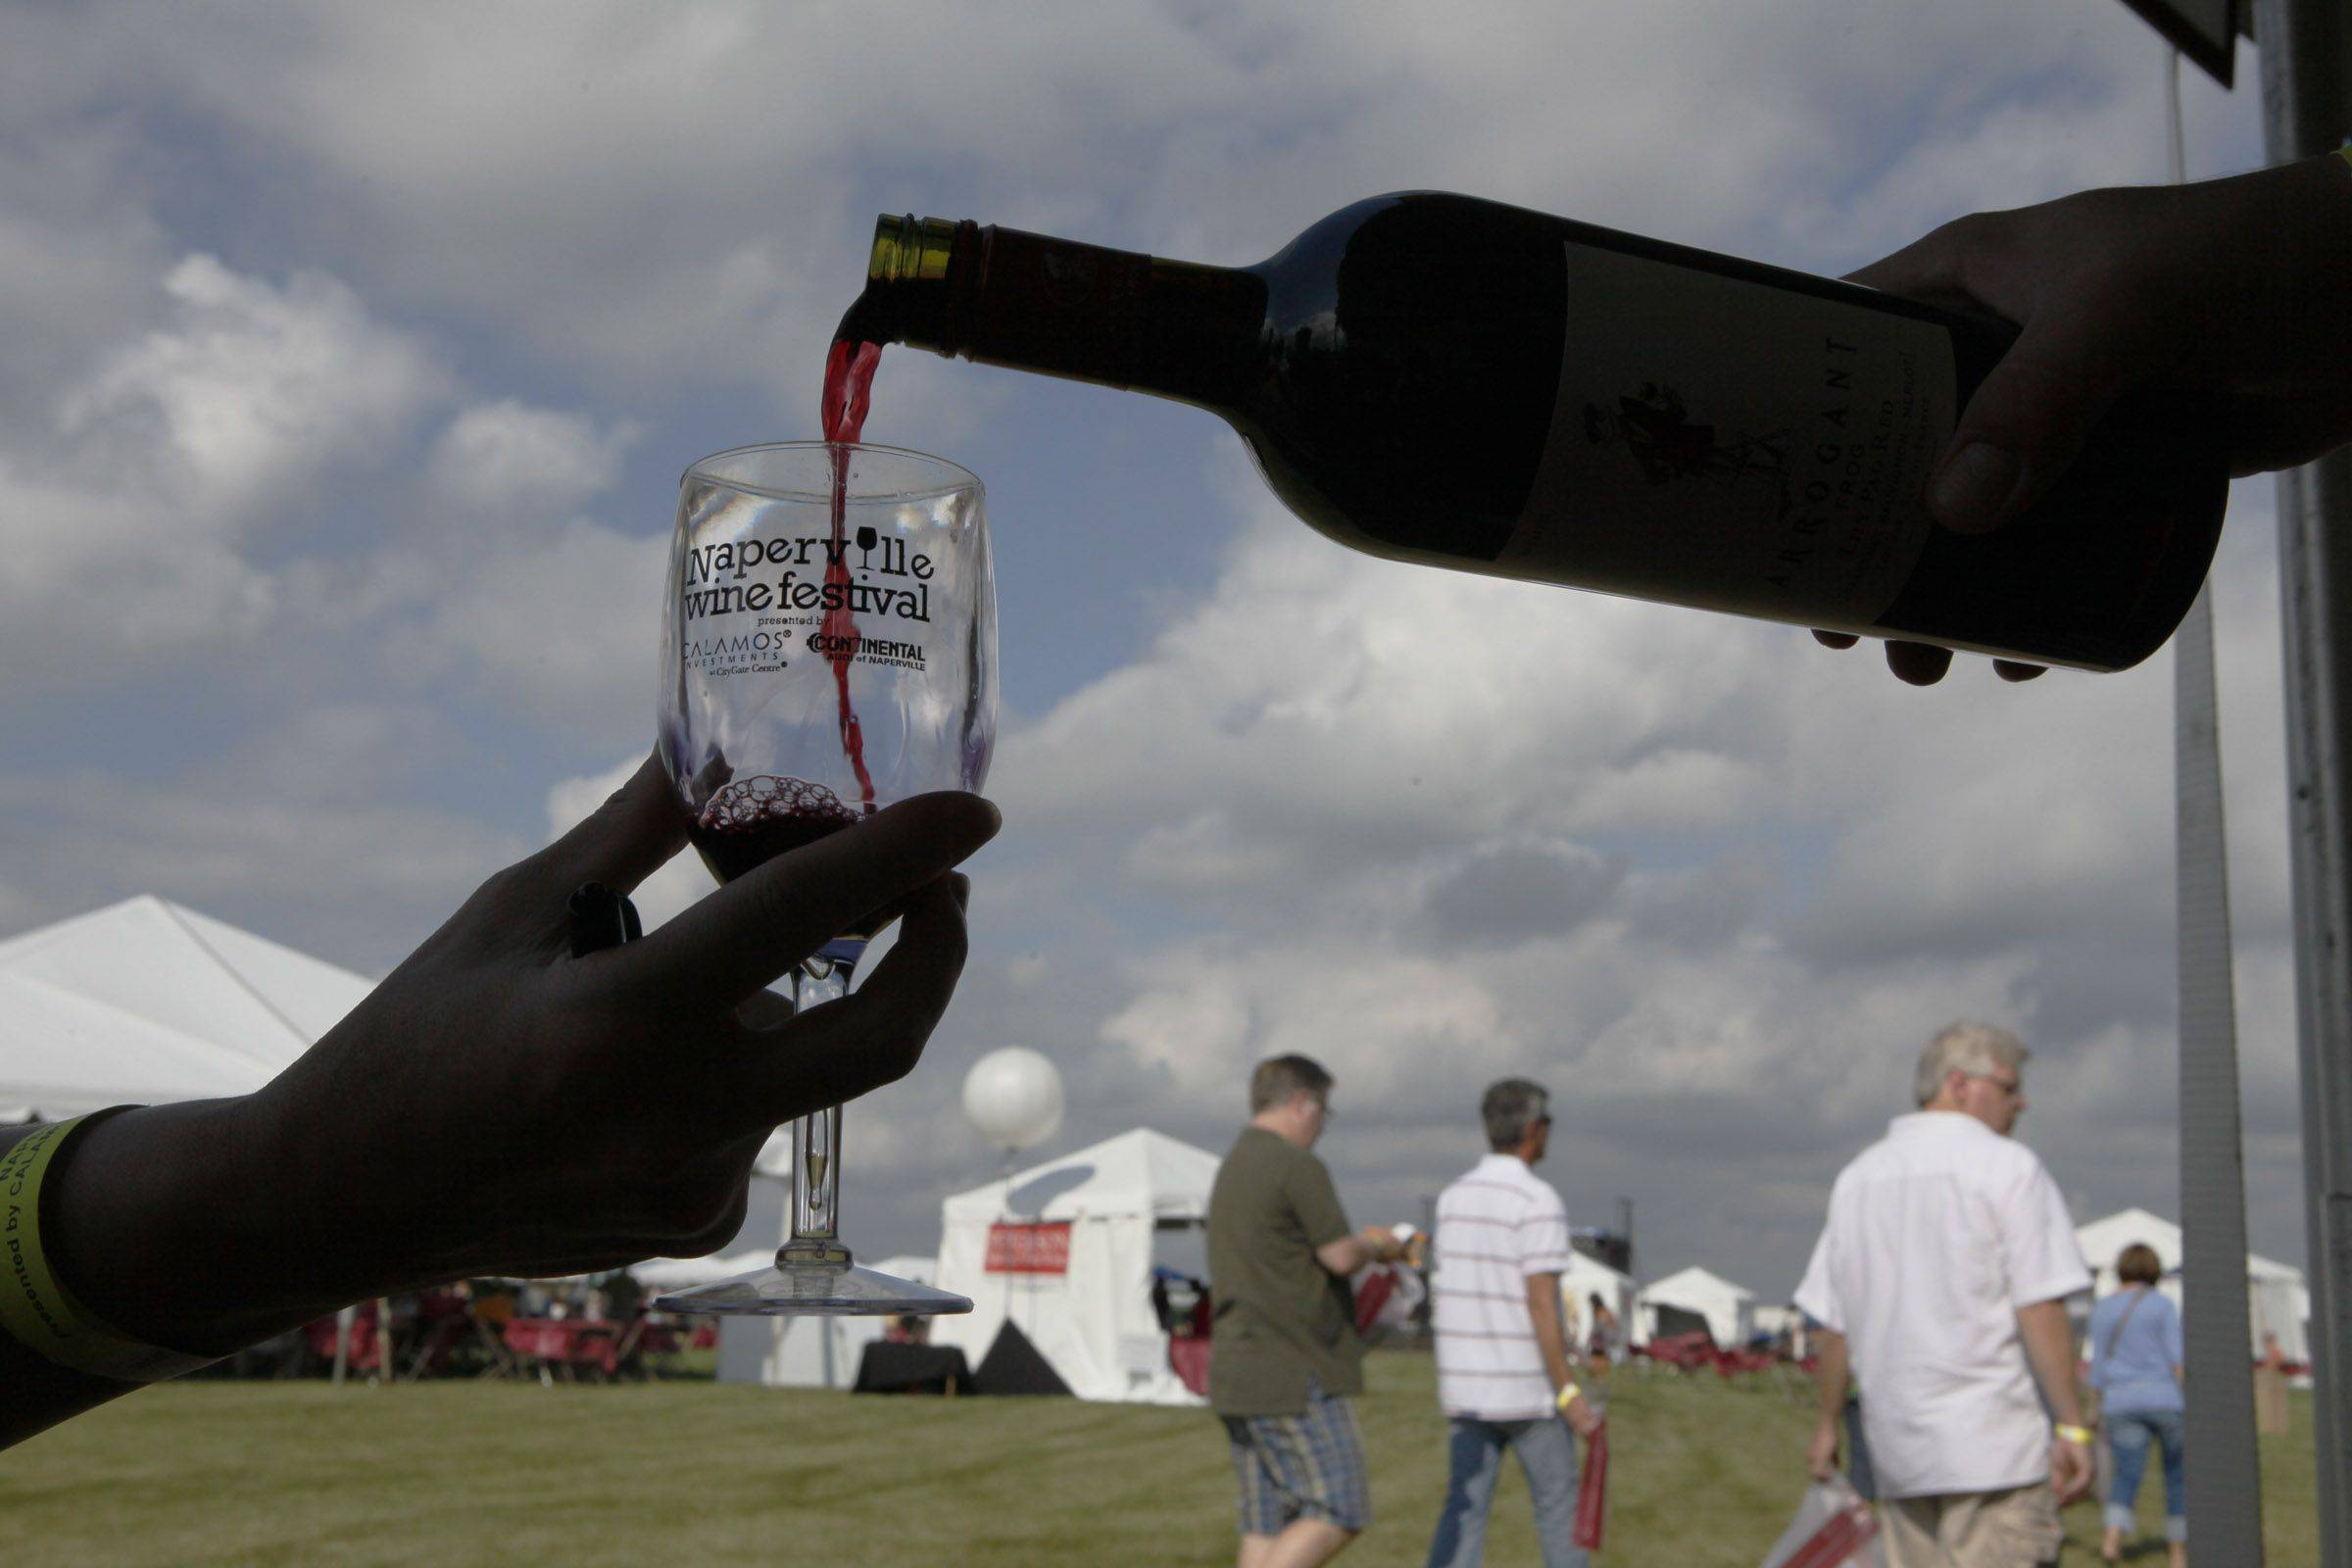 Wine was poured throughout the day Saturday at the Naperville Wine Festival at CityGate Centre.